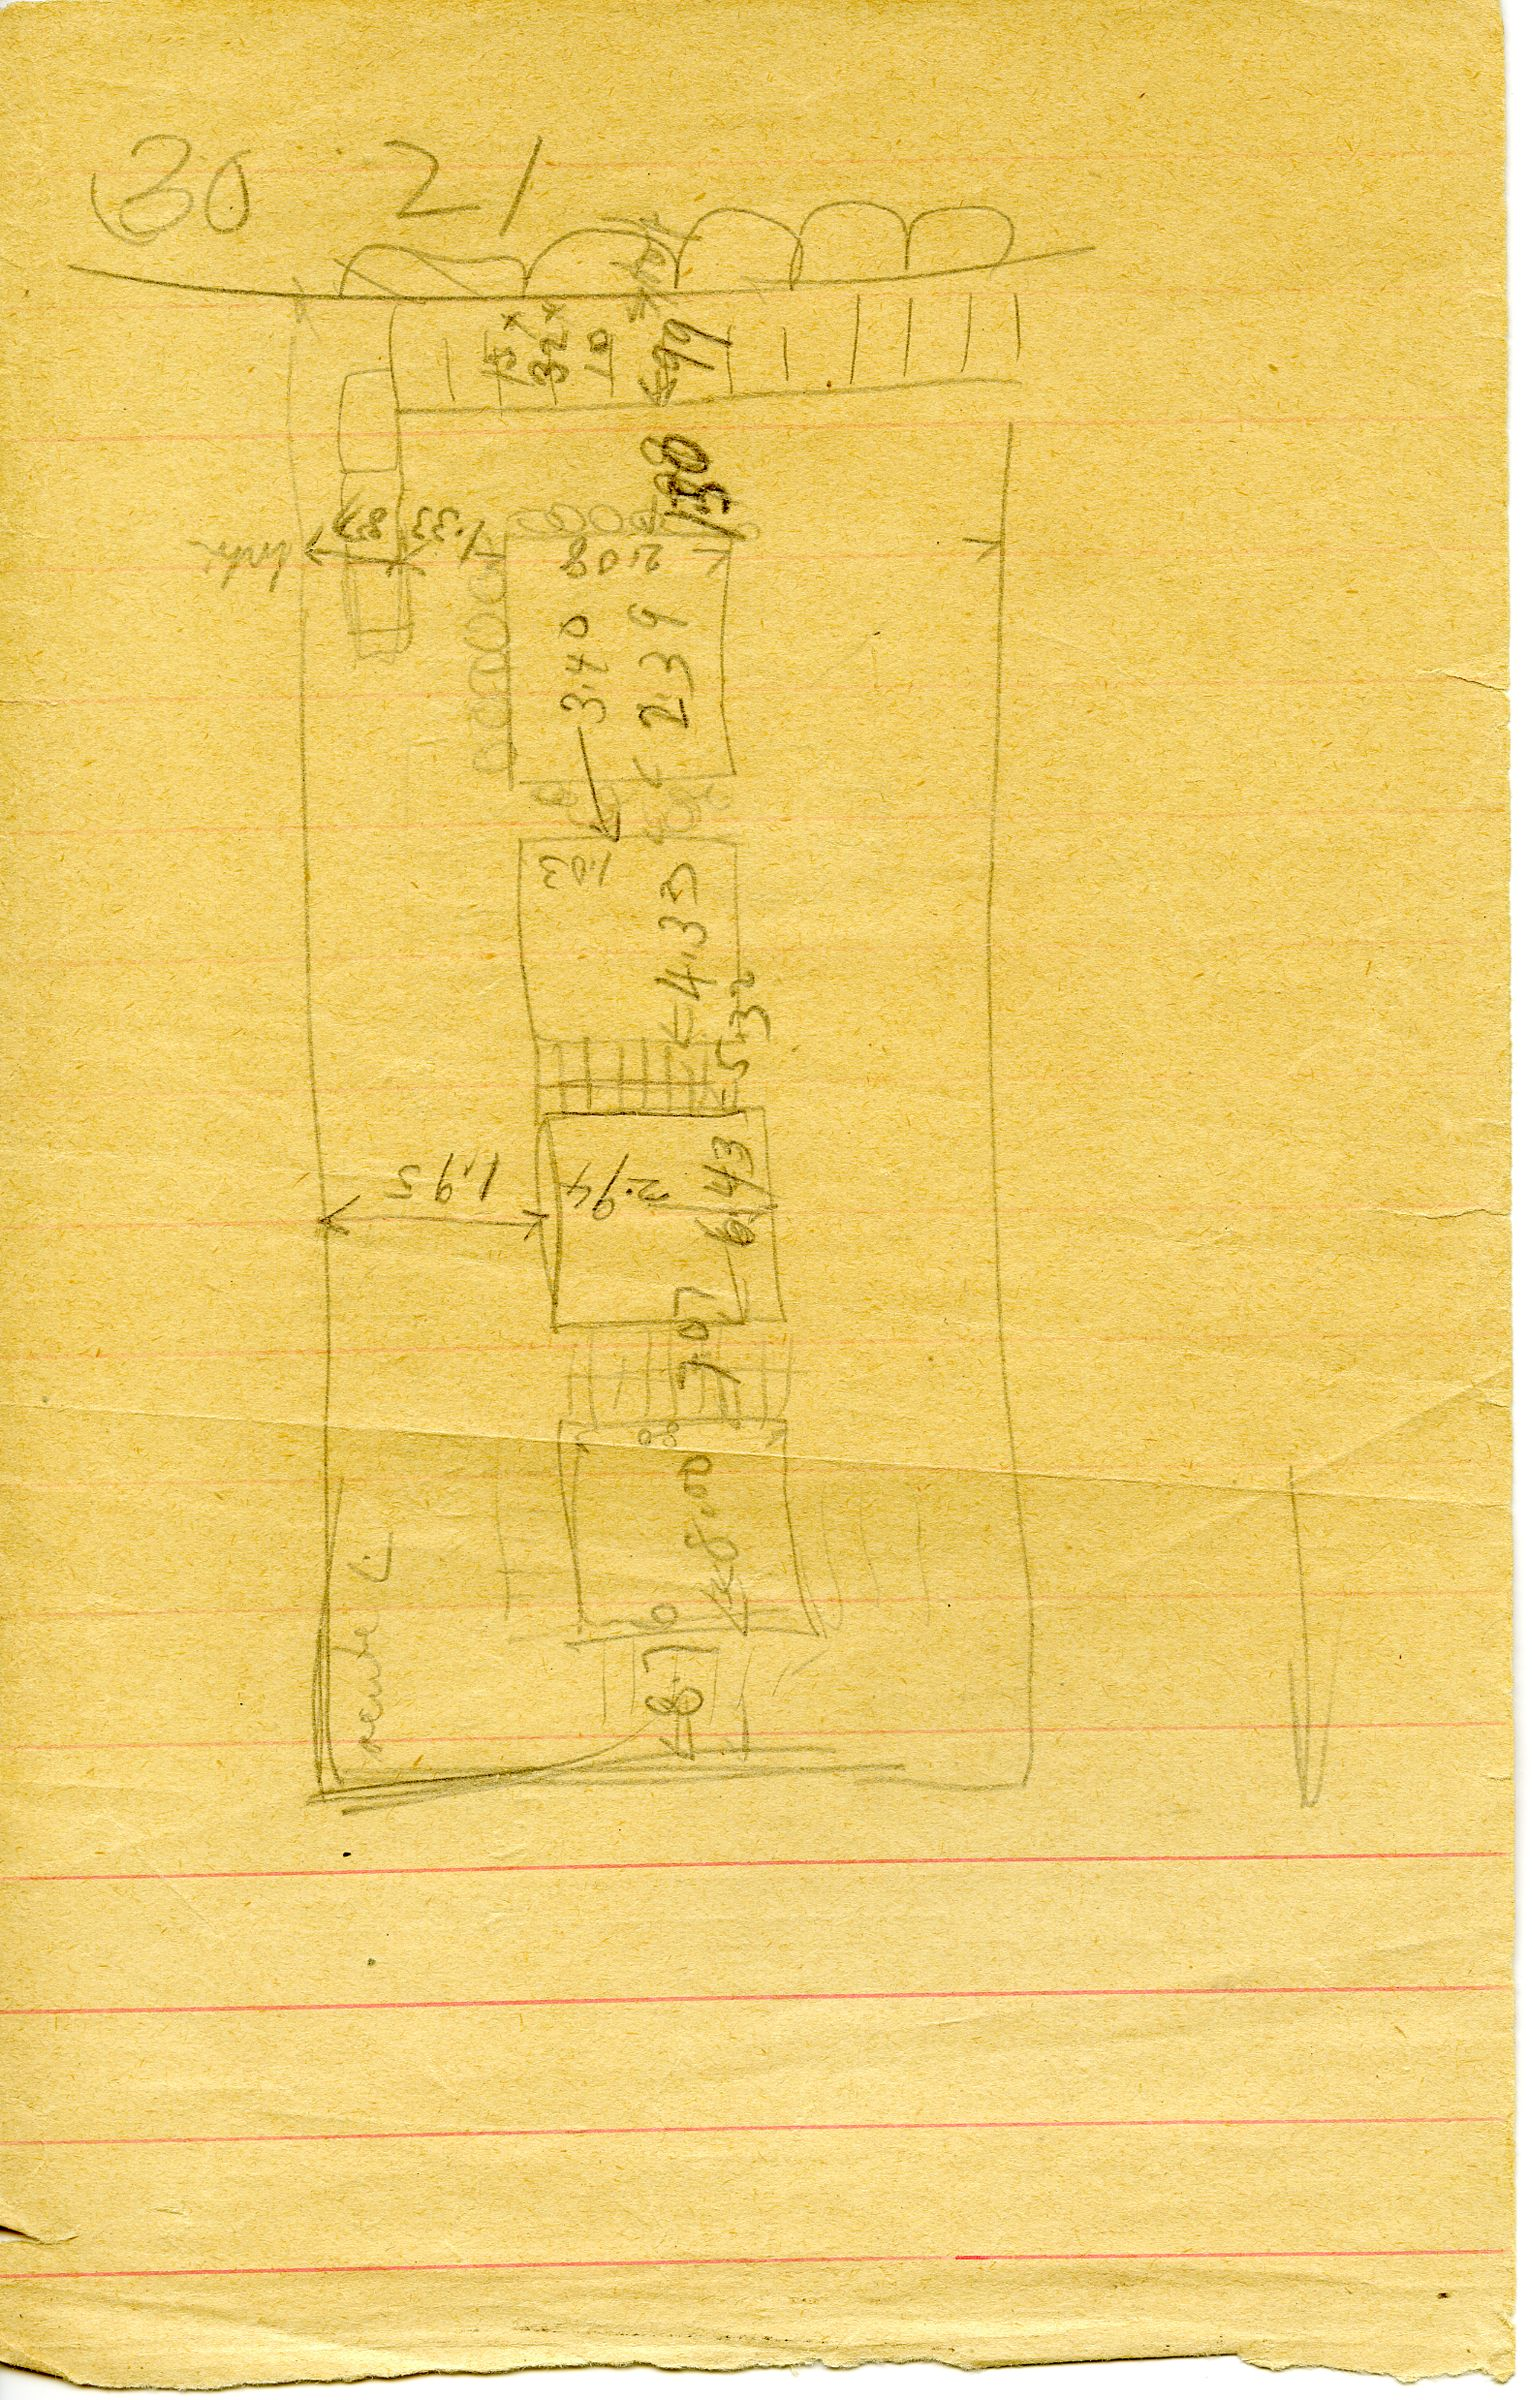 Maps and plans: G 3021, Sketch plan